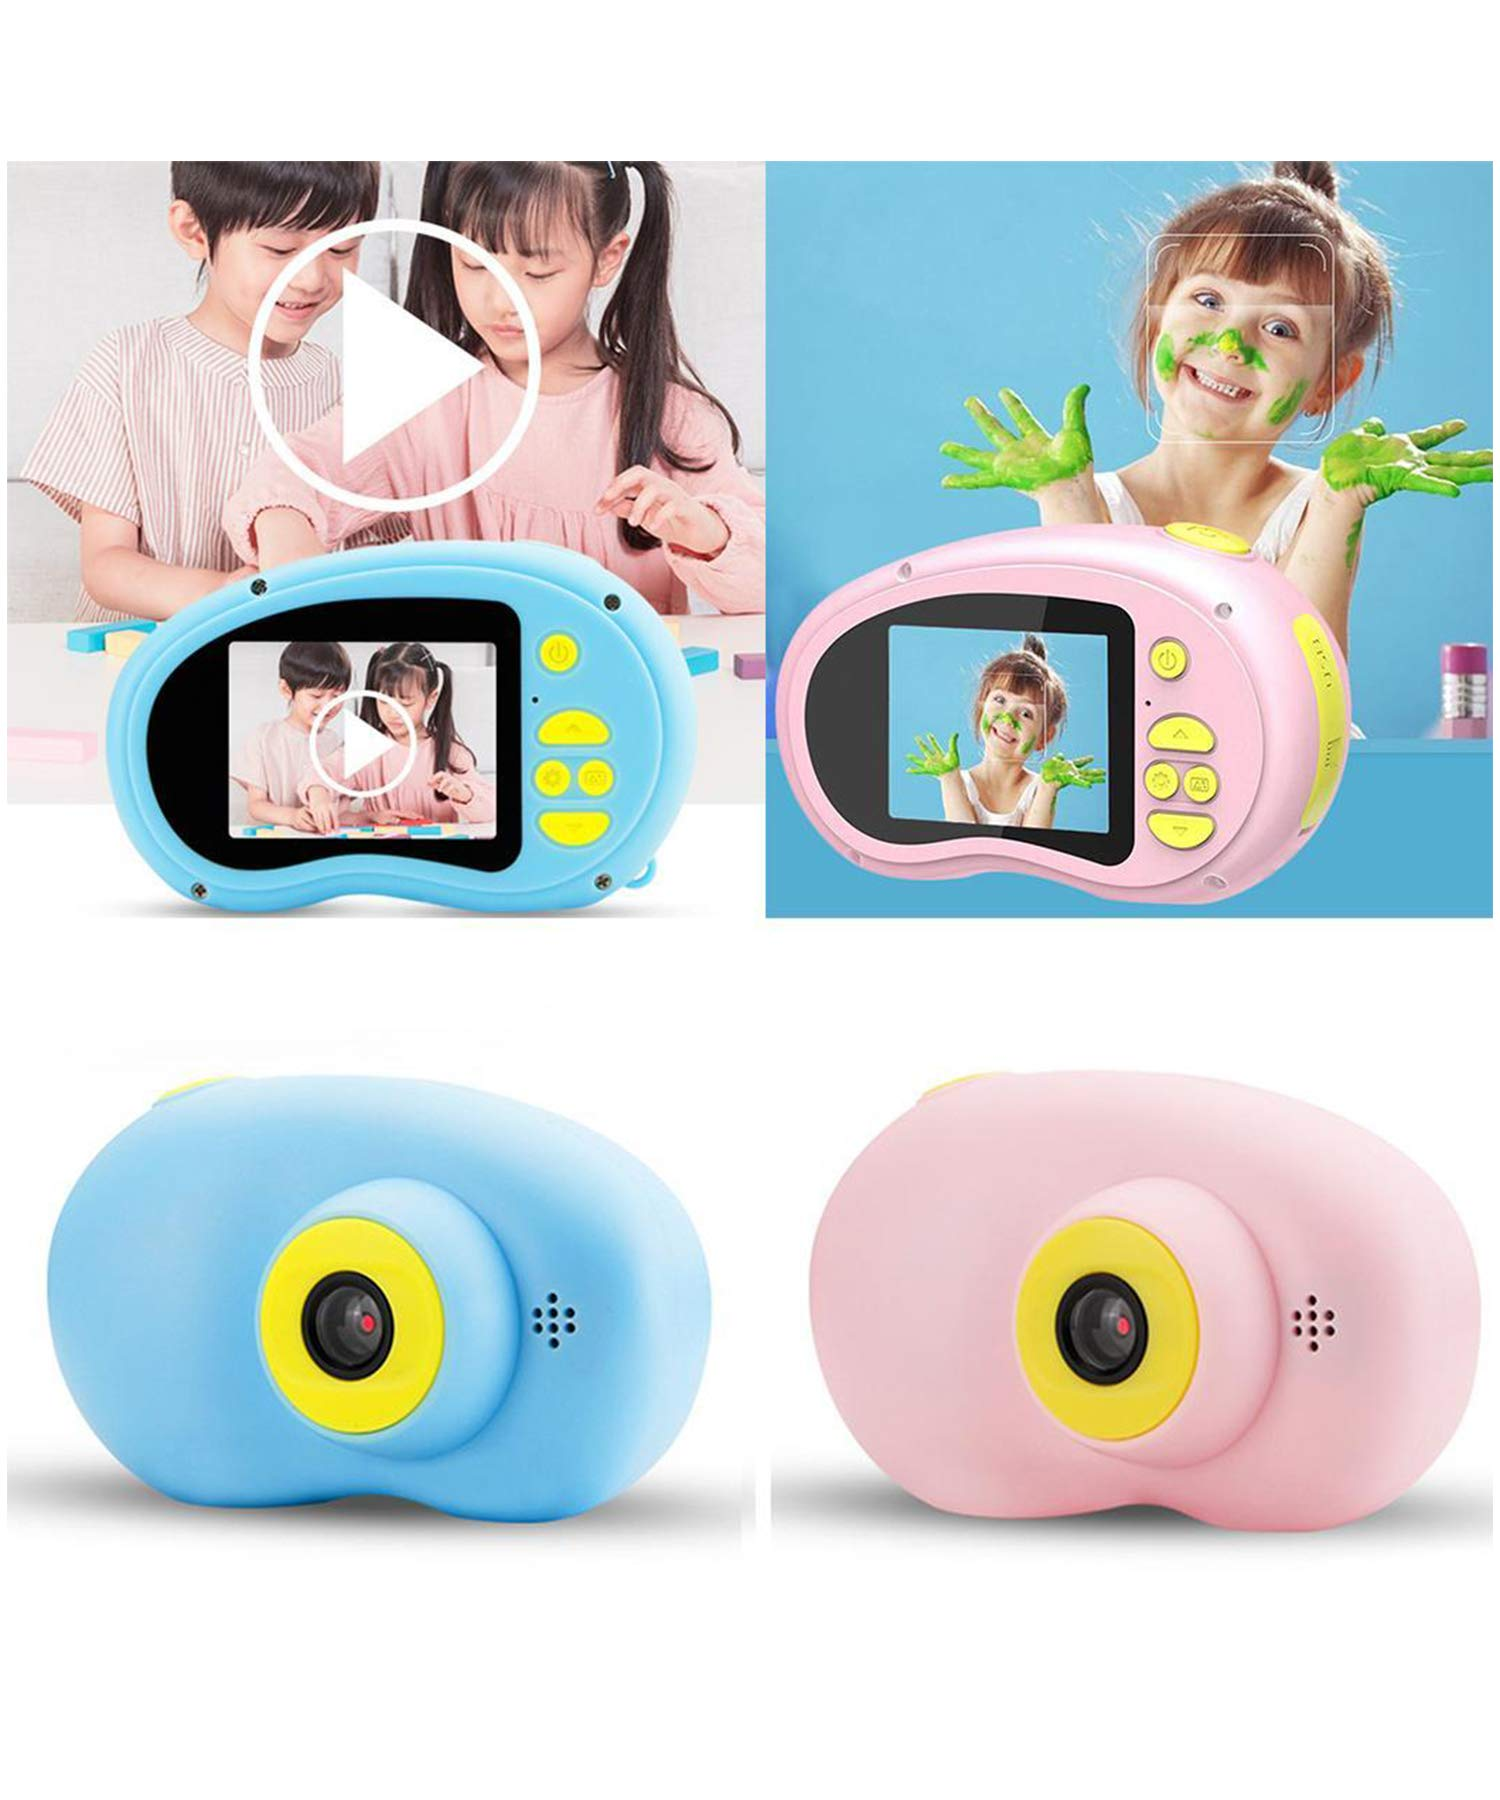 Yirind Kids Camera Support Video Function, 2 inch HD Digital 800MP Child Camera for Outdoor Play, for 3-12 Years Old Children (SD Card Not Included),Blue